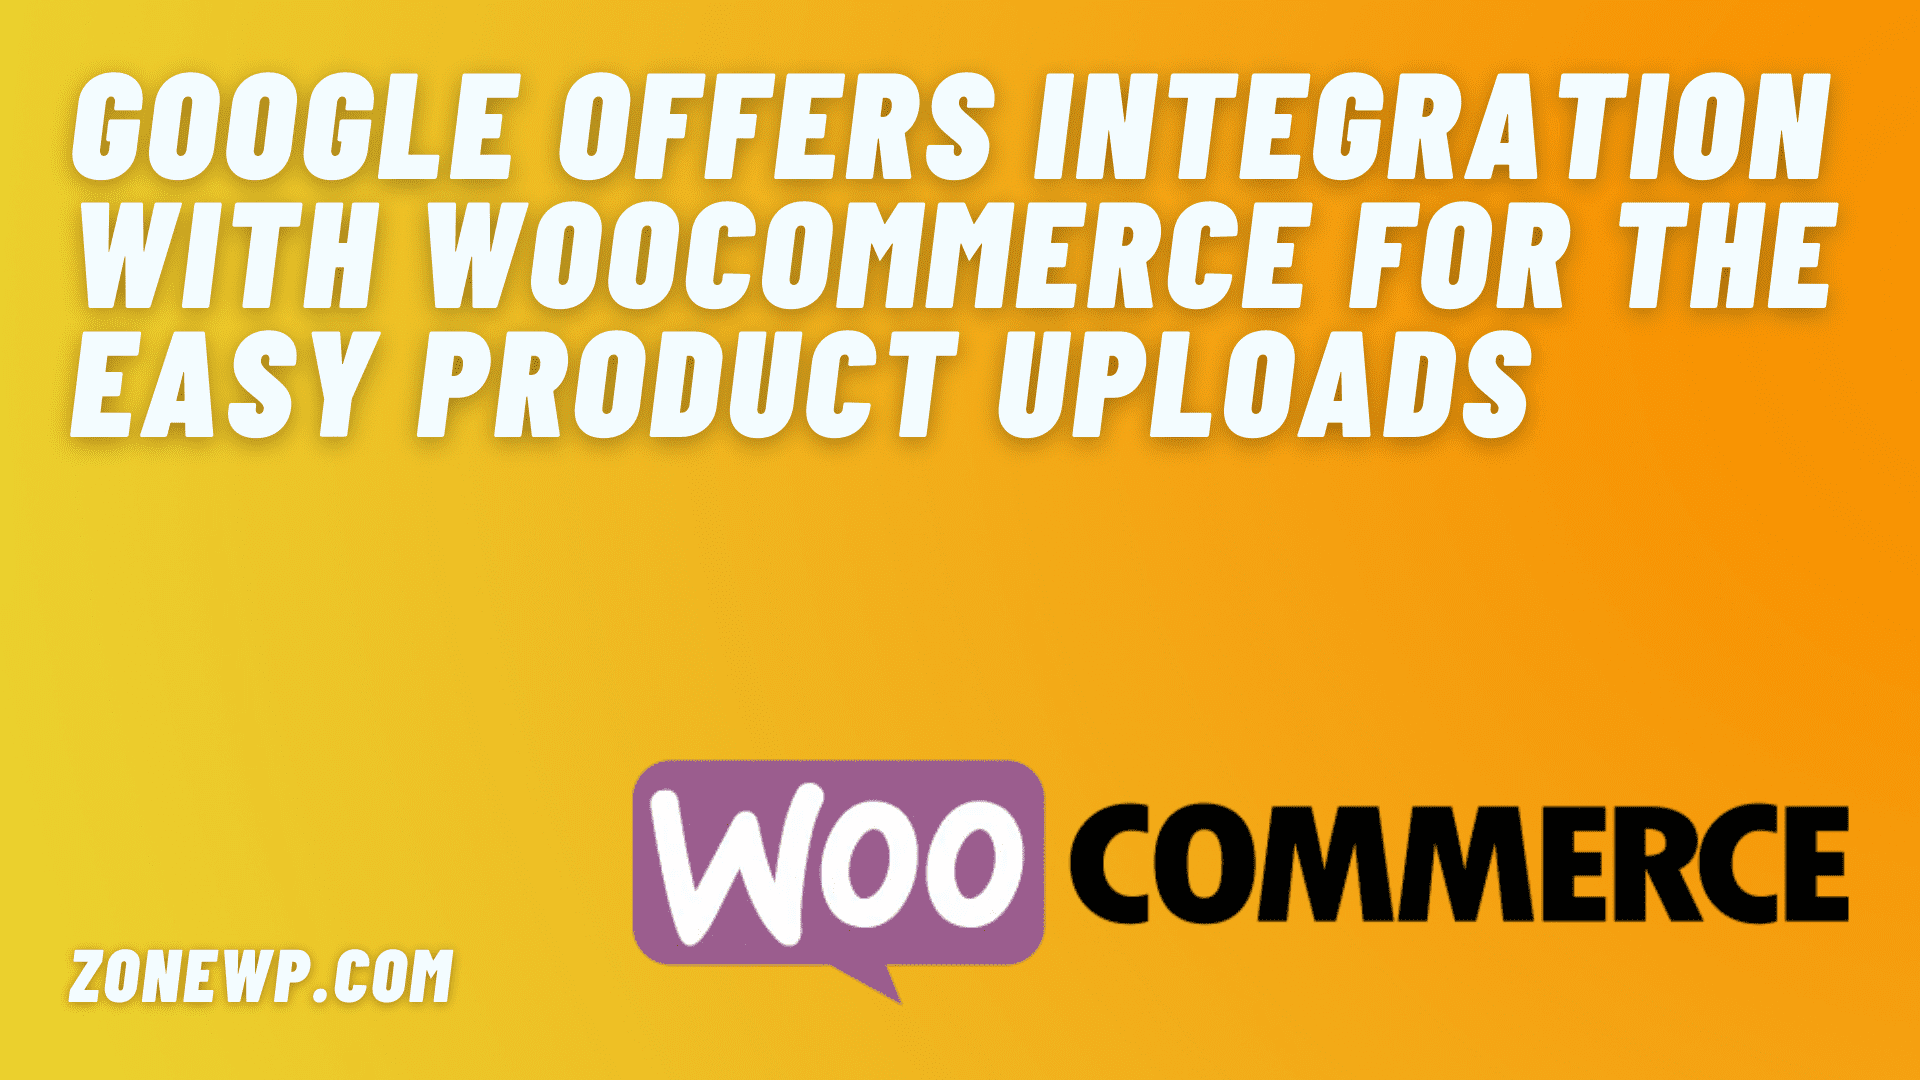 Google offers integration with WooCommerce for the easy product uploads